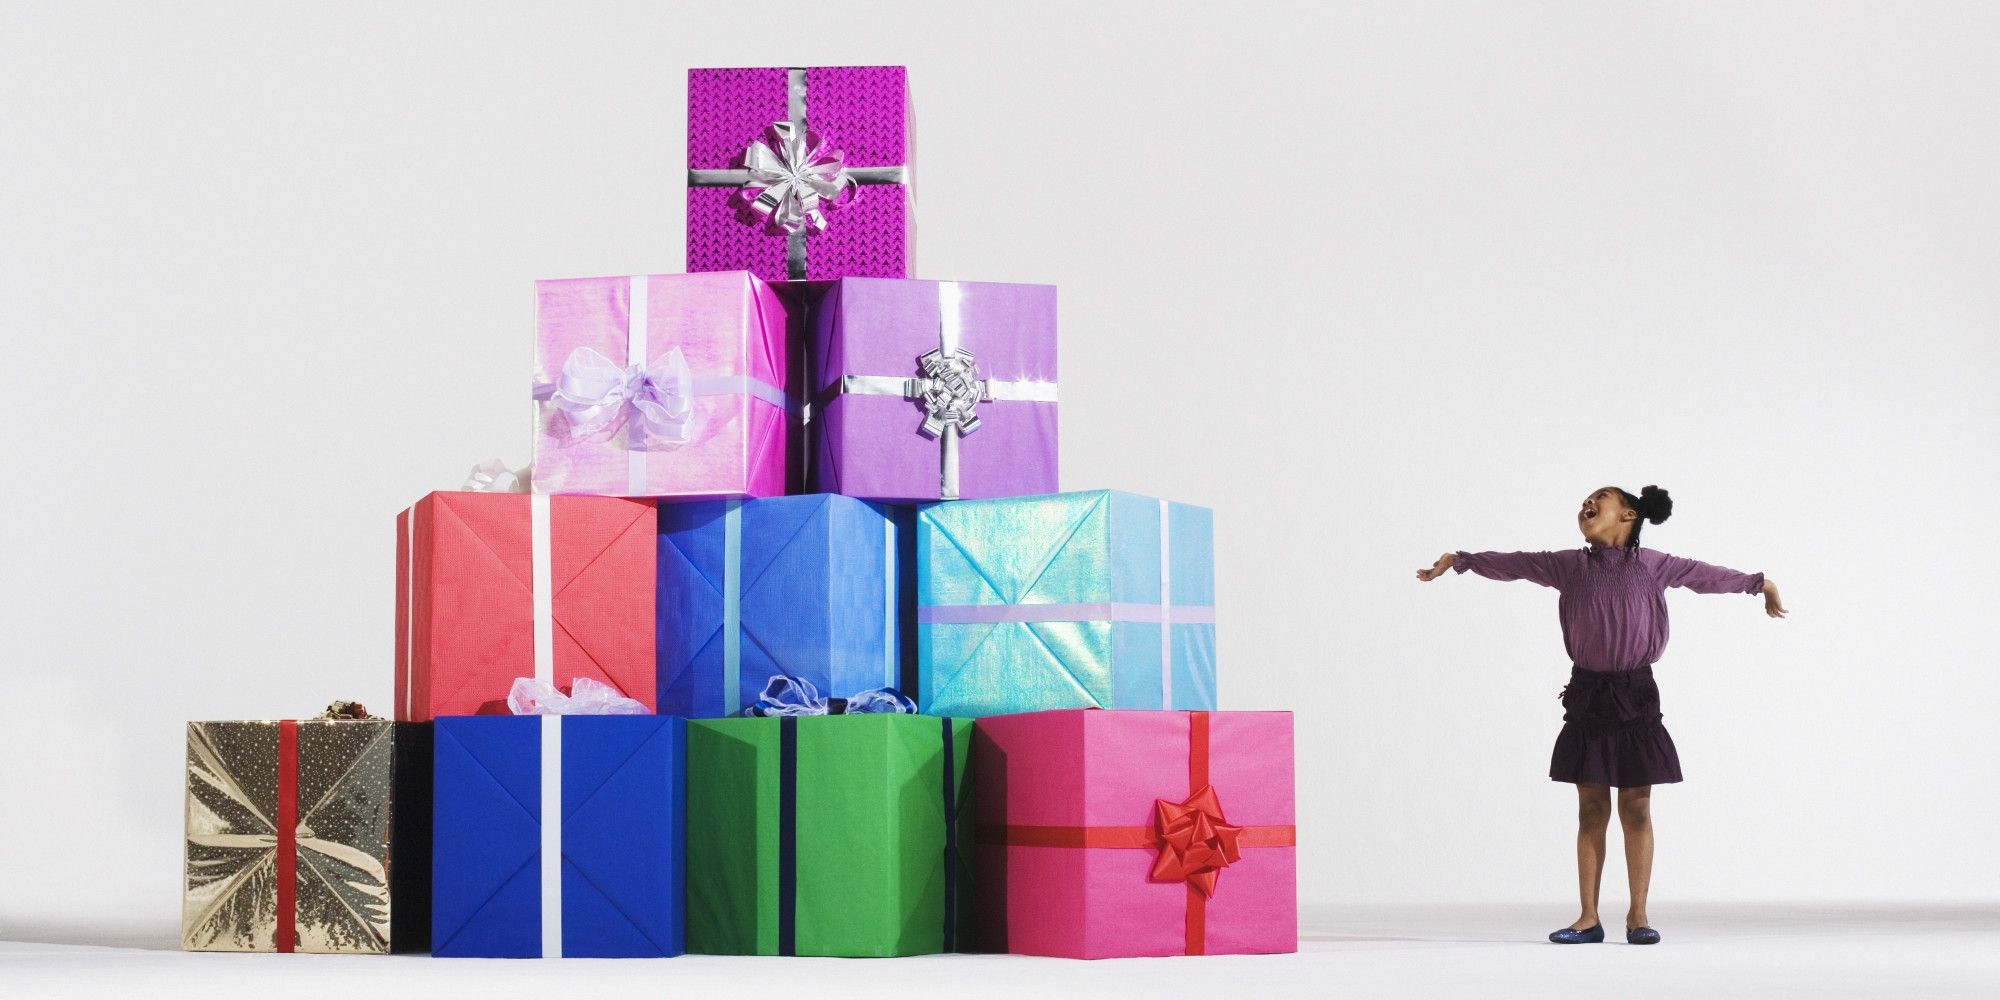 Cheap gift ideas under 20 100 popular christmas gifts via cheap gift ideas under 20 100 popular christmas gifts via hiffington post izmirmasajfo Image collections